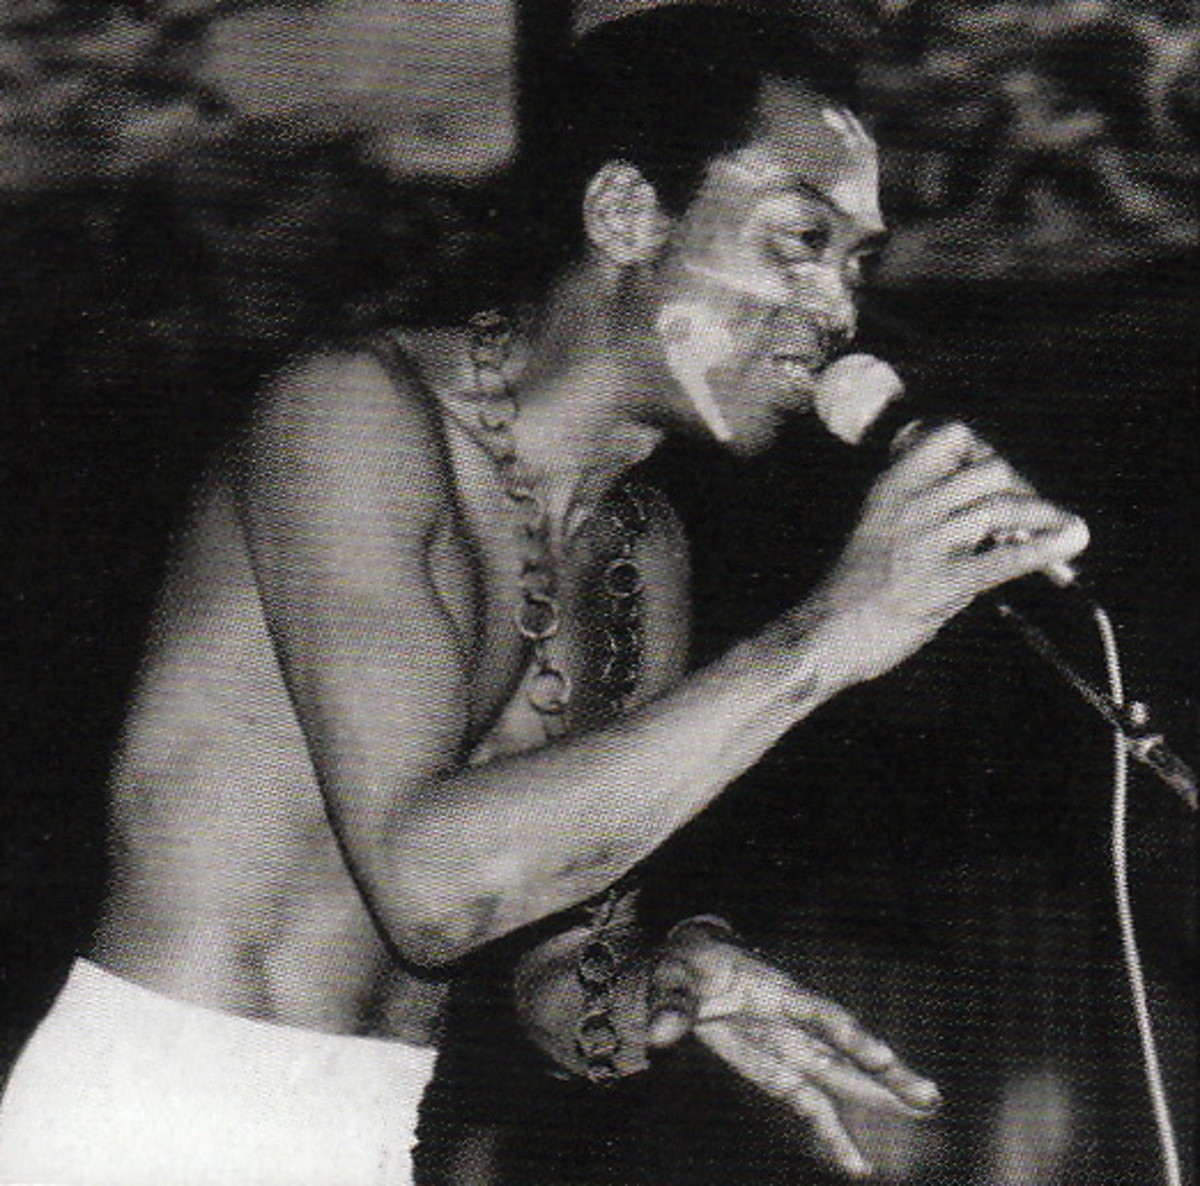 Fela in full swing and jam mode in one of his many live concerts